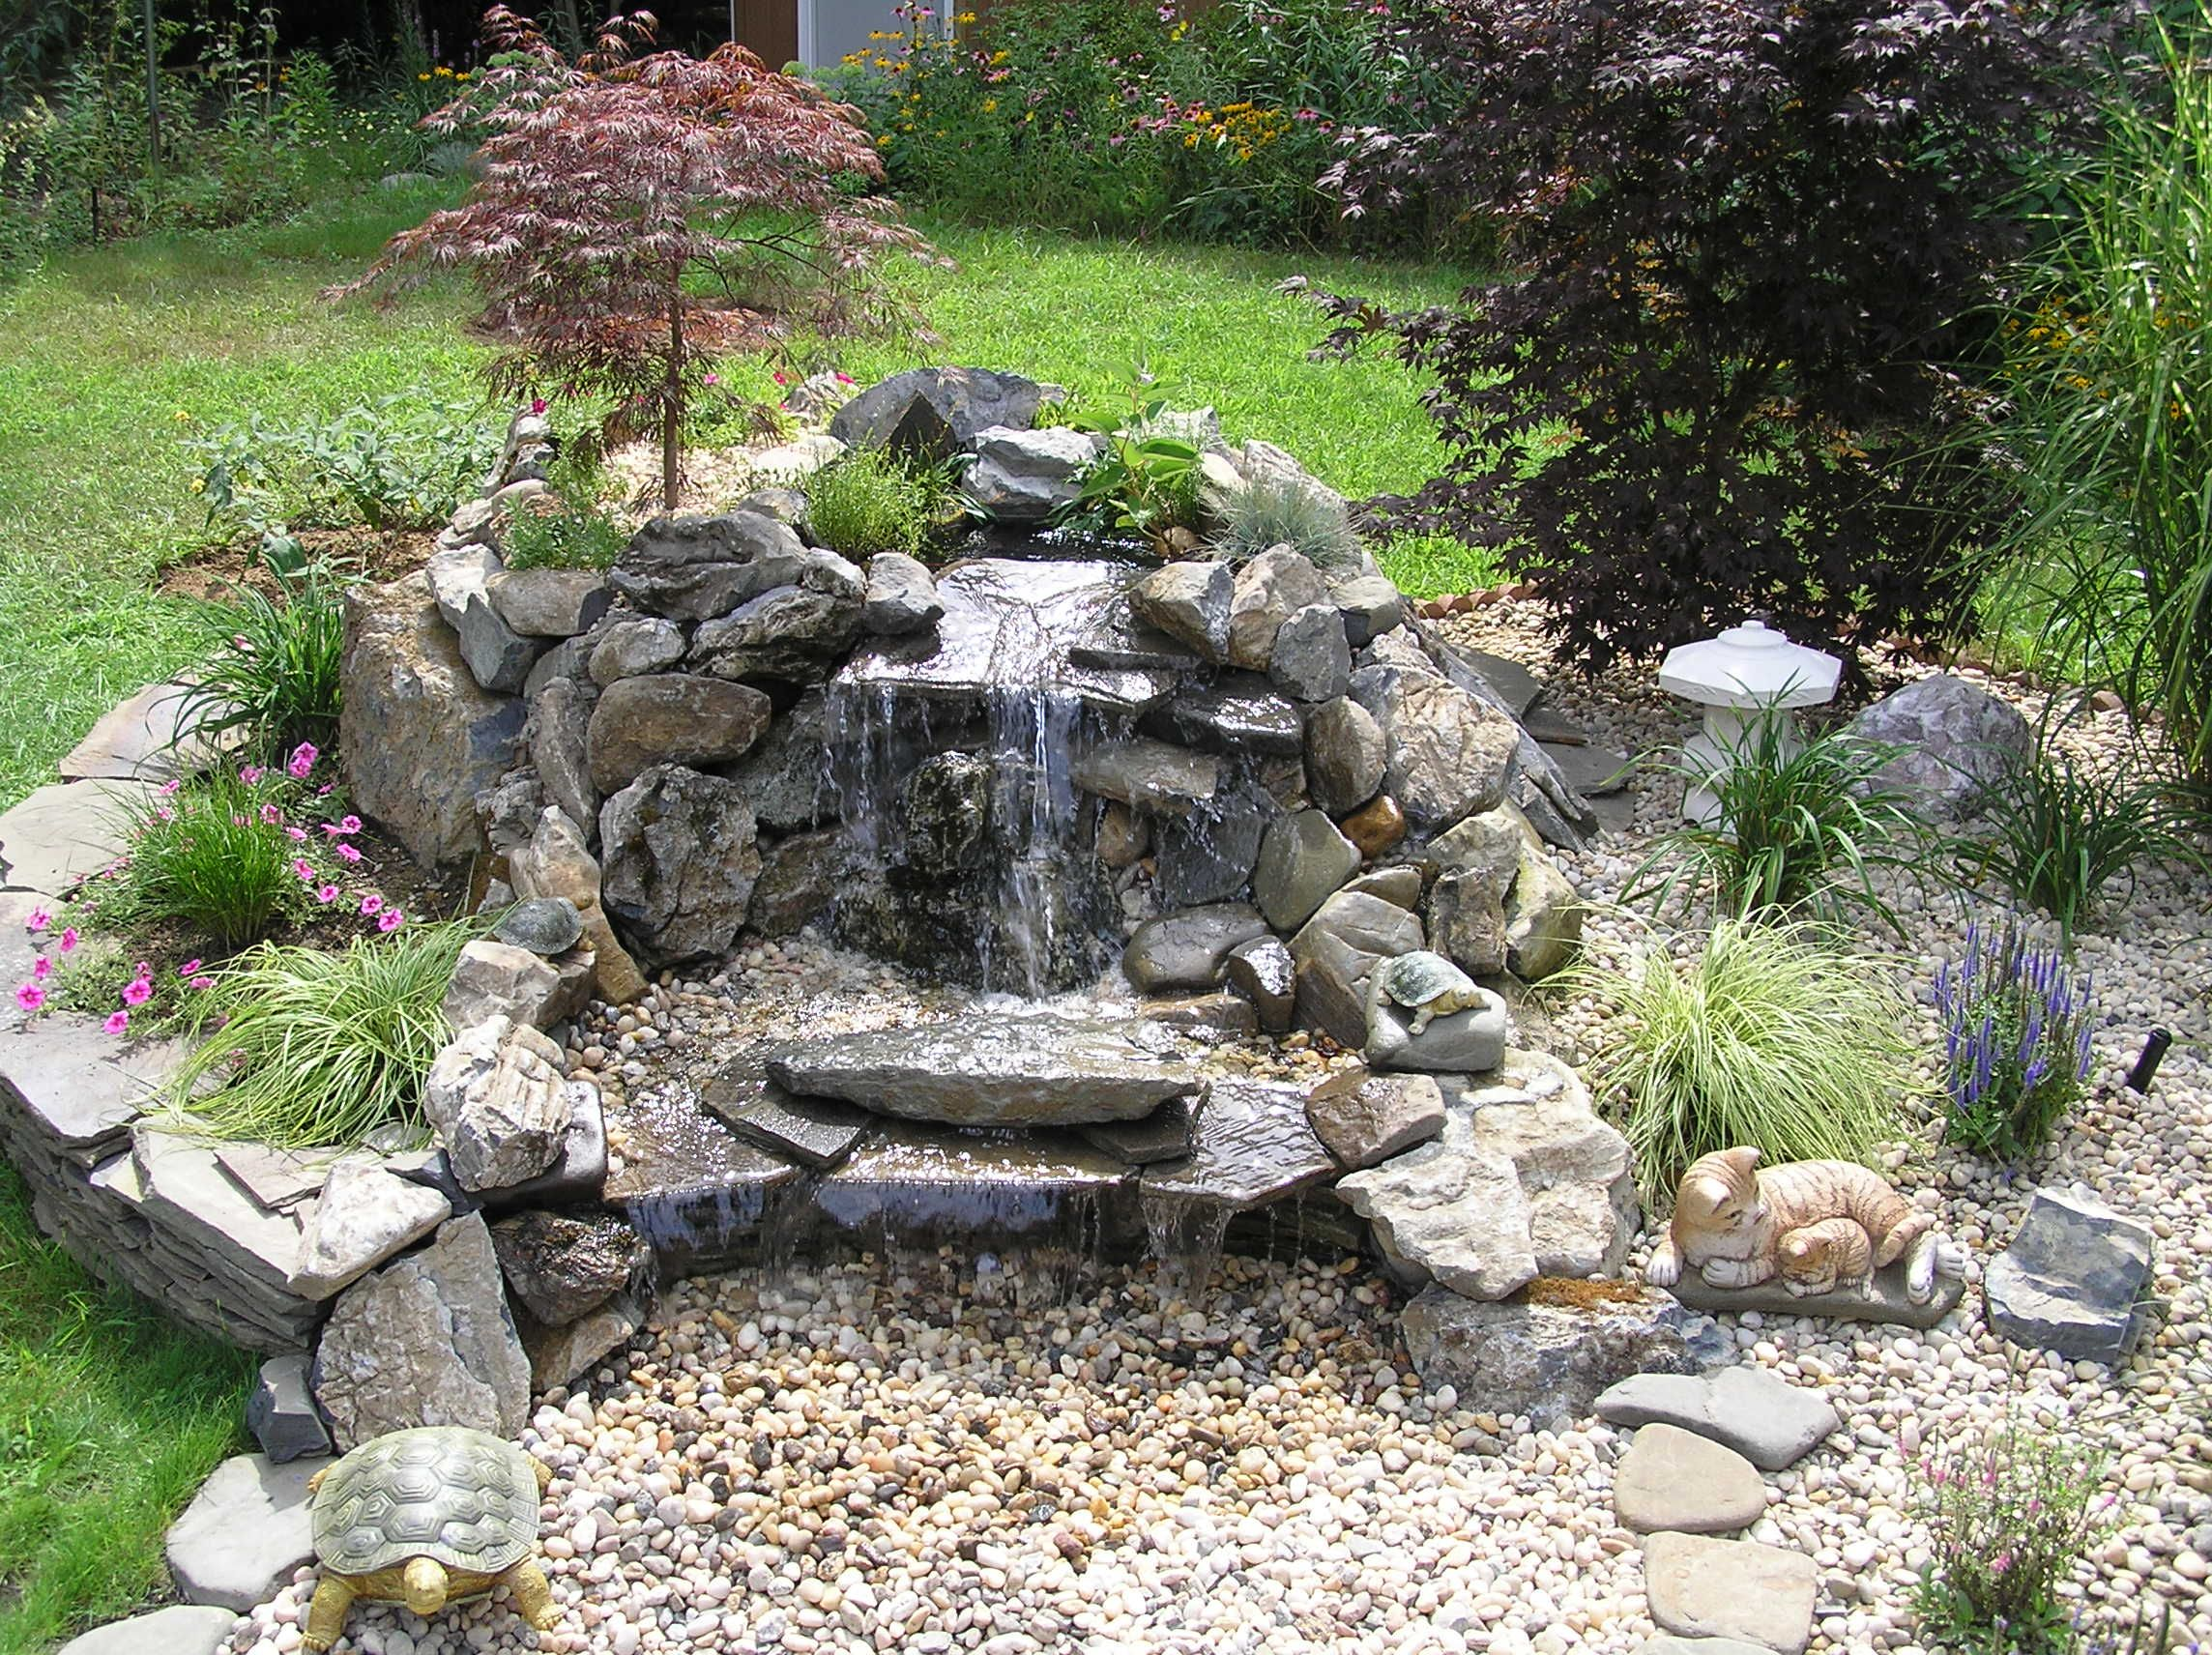 Download full size image bar design backyard waterfalls for Fish pond fountain design